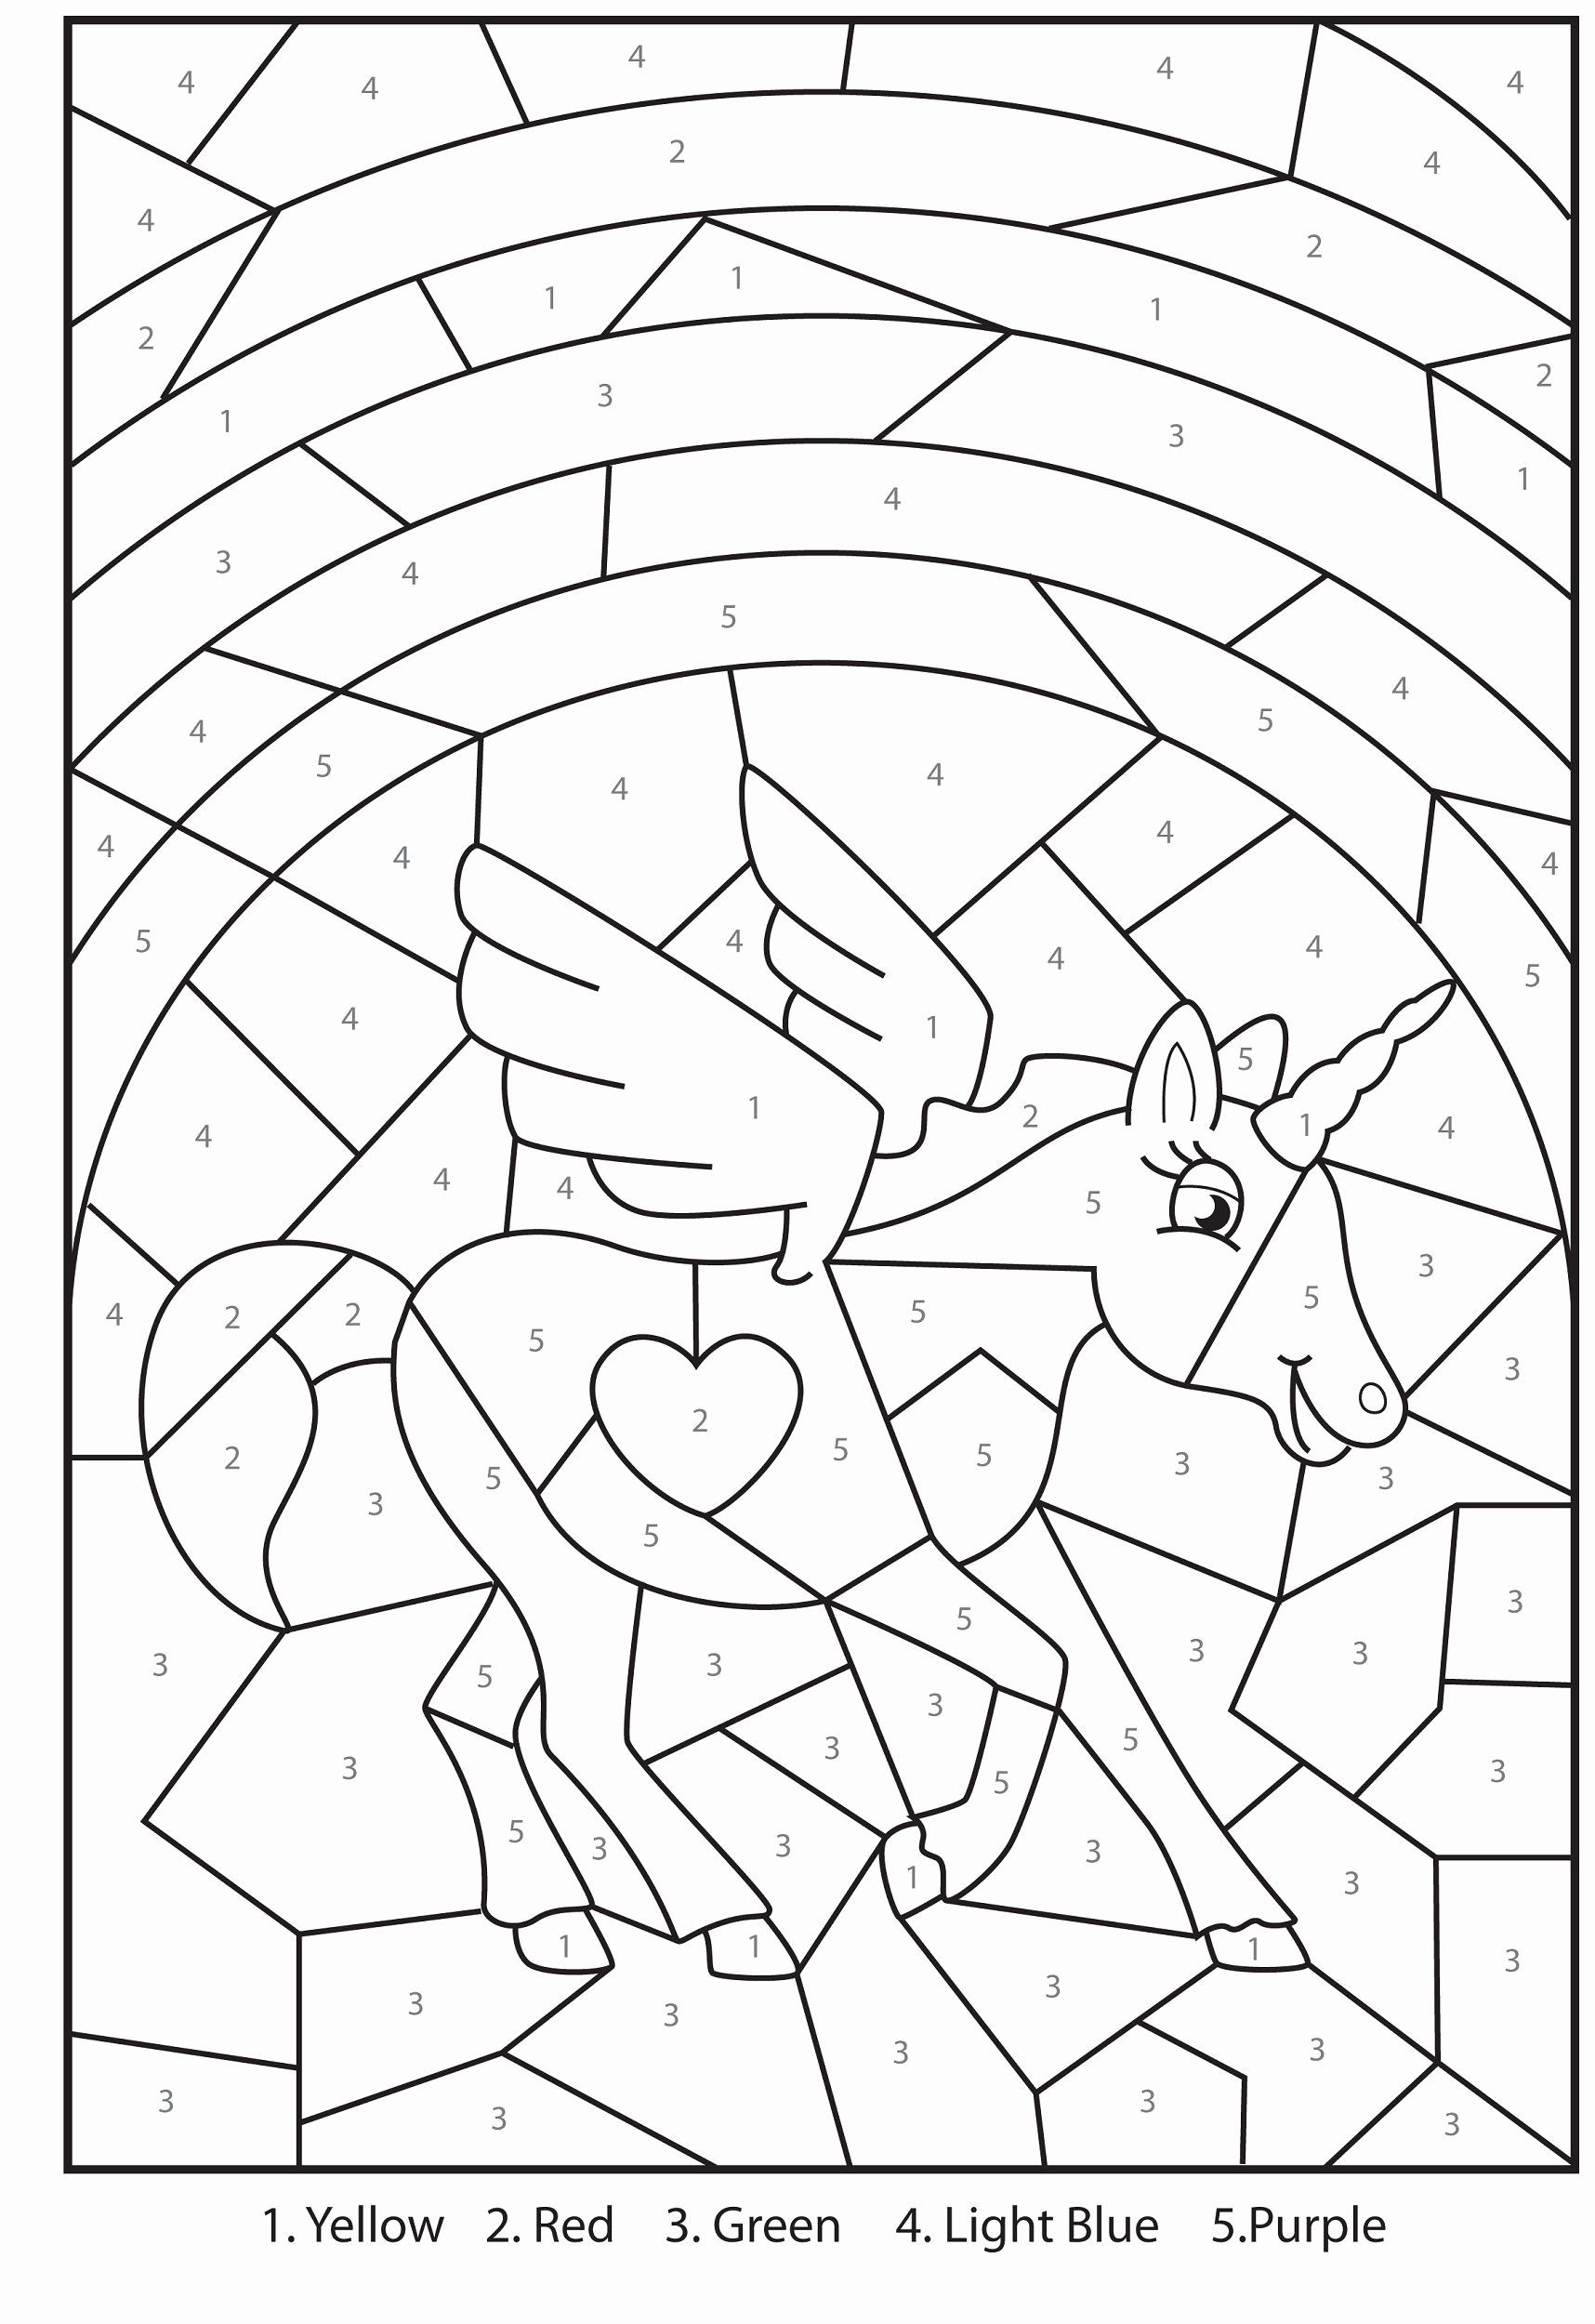 Hidden Picture Coloring Sheets Best Of Hidden Picture Color By Number Unicorn Coloring Pages Free Kids Coloring Pages Heart Coloring Pages